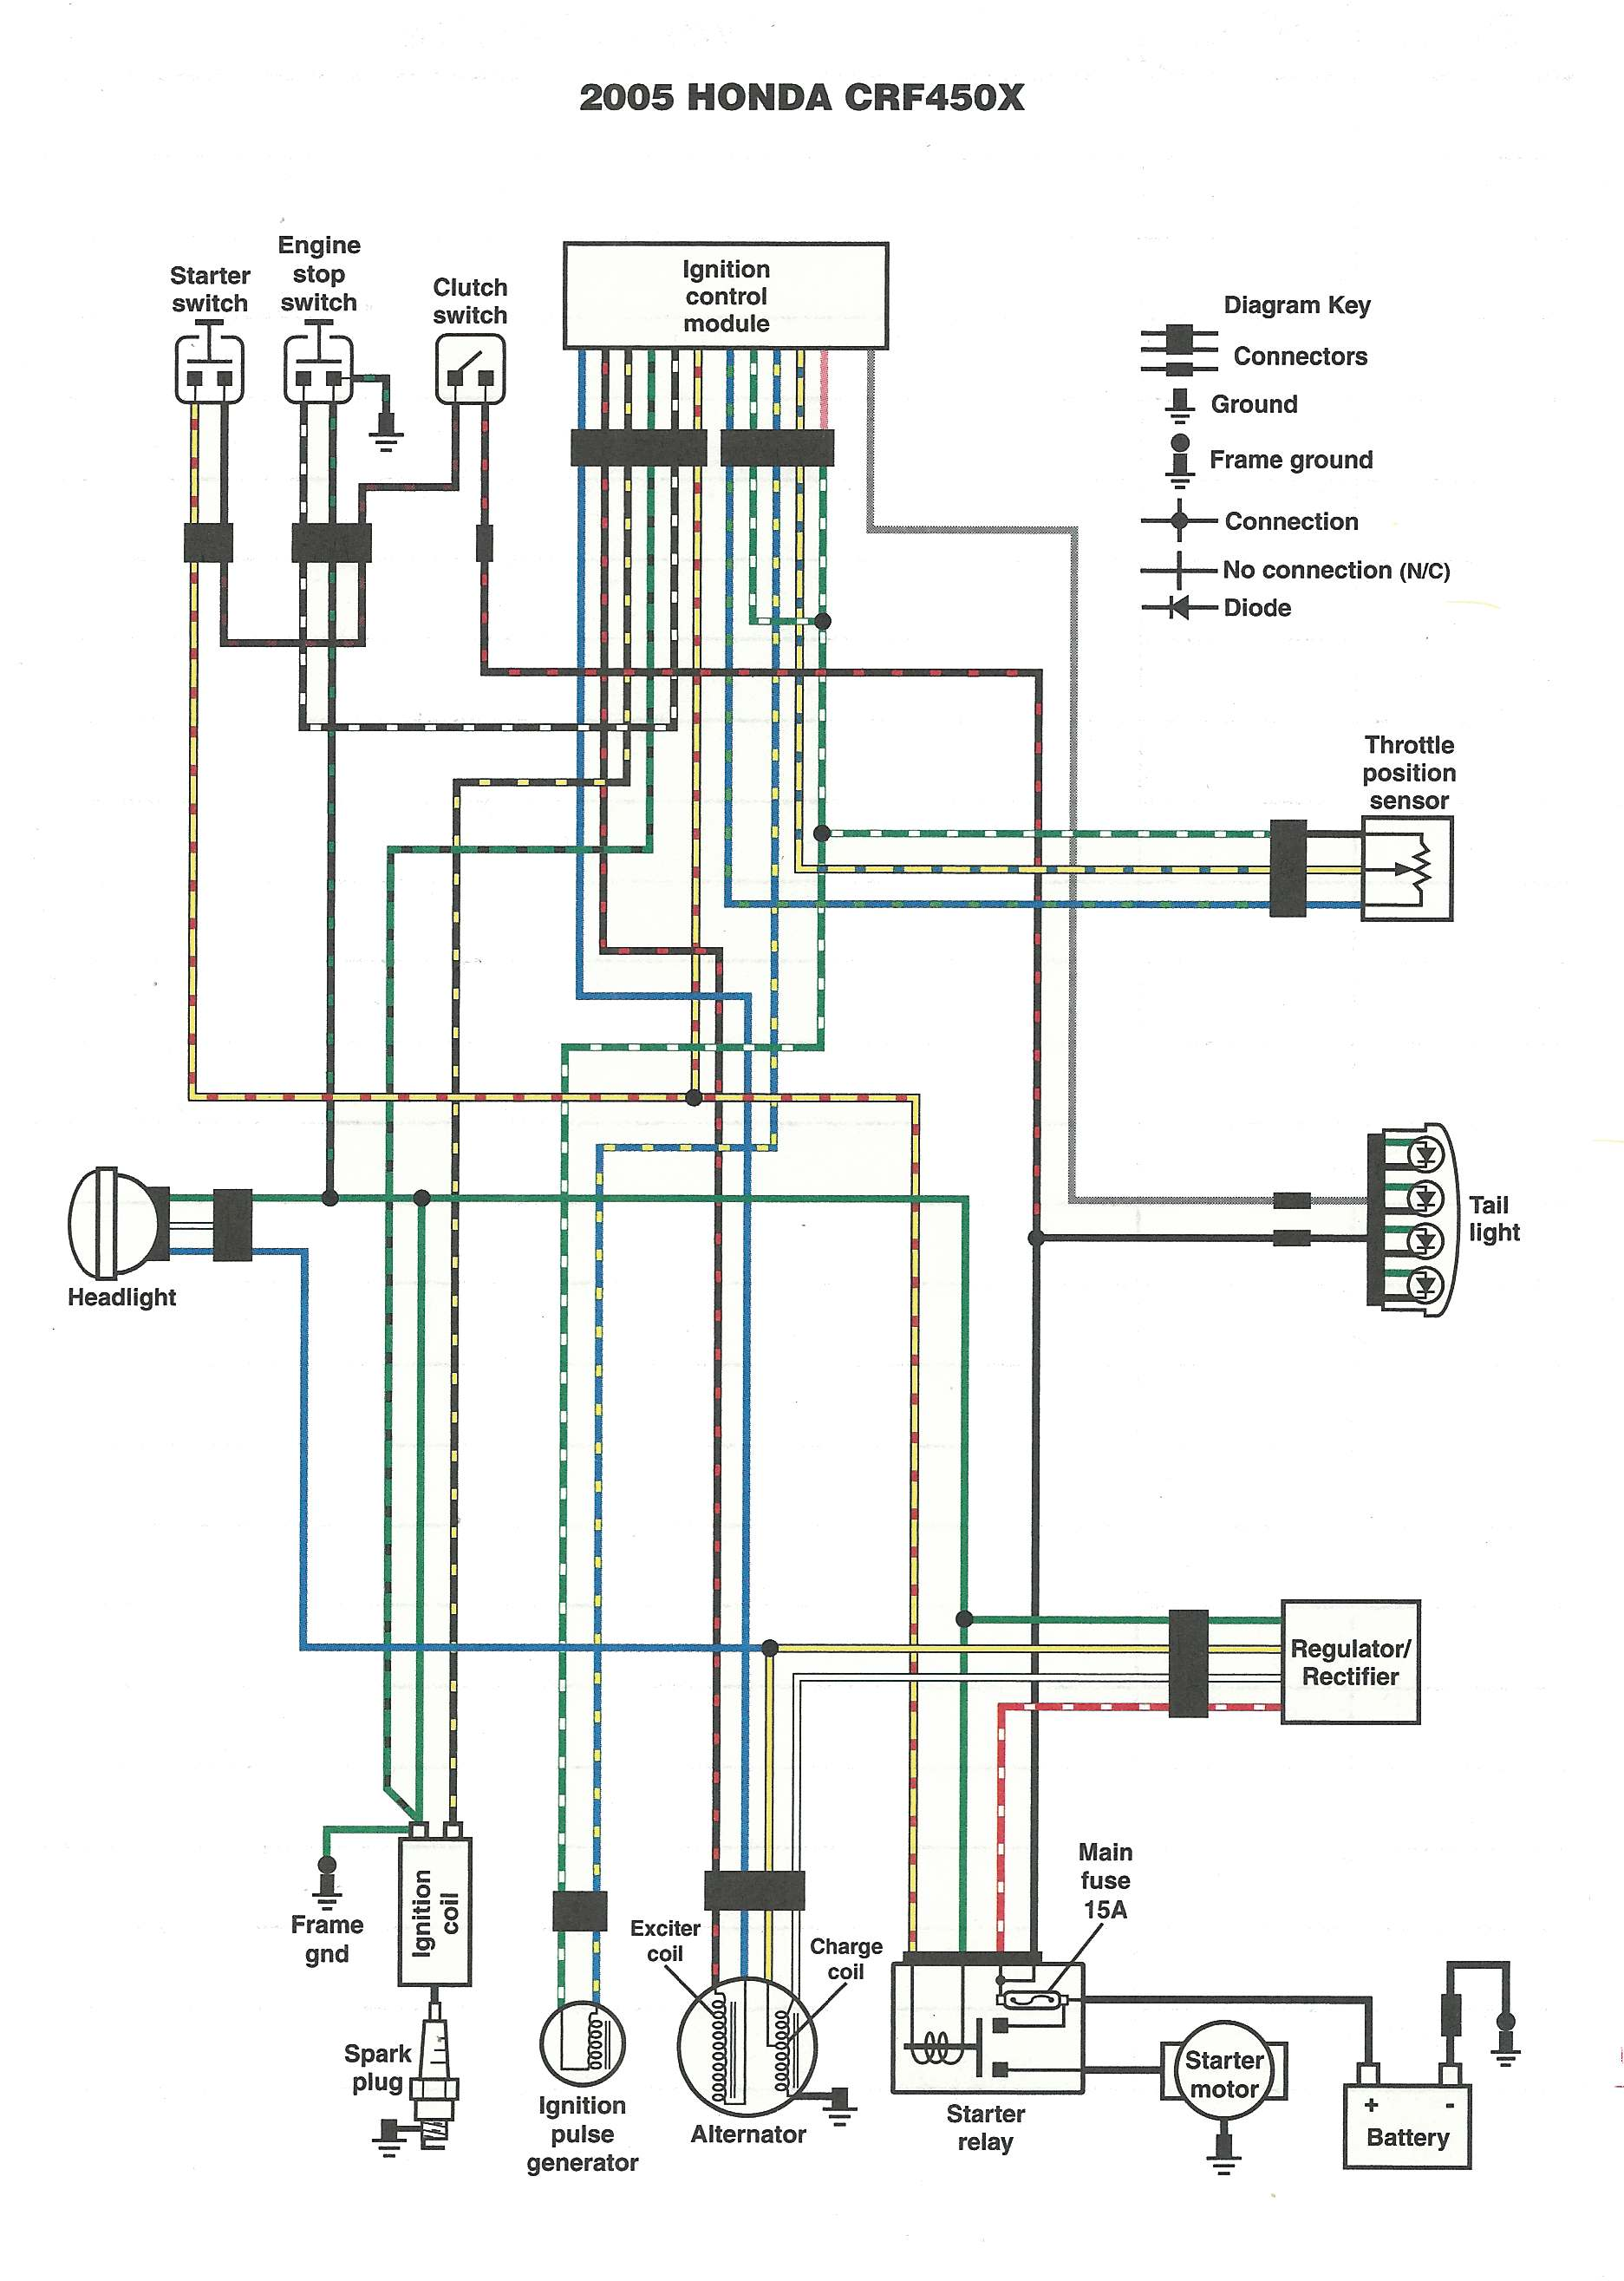 hight resolution of d61 wiring diagram wiring diagram todayd61 wiring diagram wiring diagrams wni d61 wiring diagram